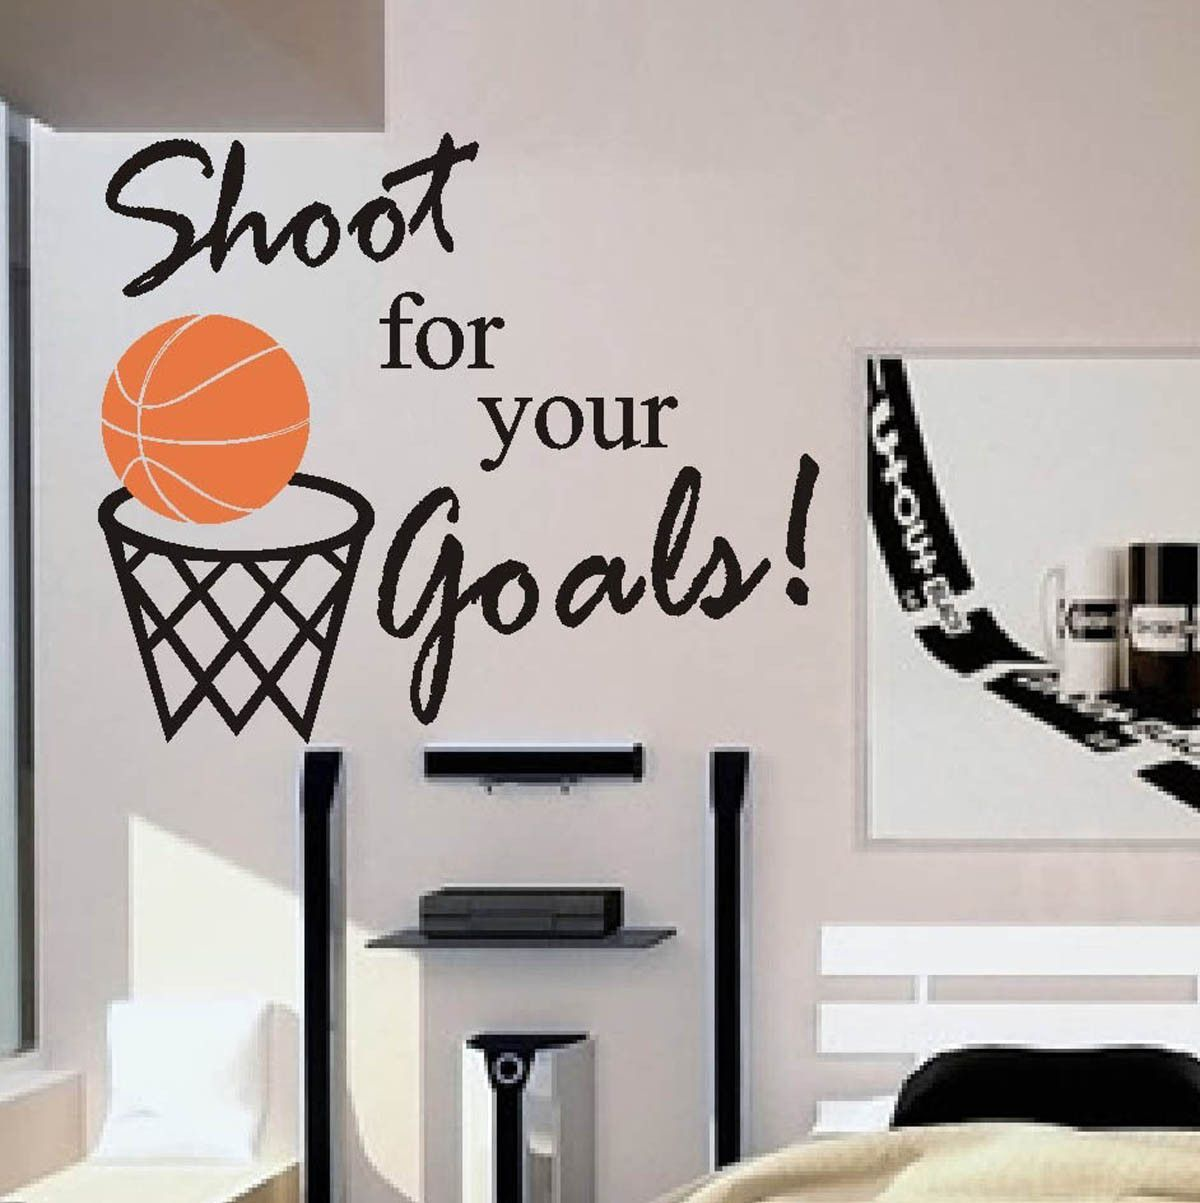 Sports Wall Decal Basketball Shoot For Your Goals Kids Lettering Basketball Bedroom Sports Wall Decals Basketball Room